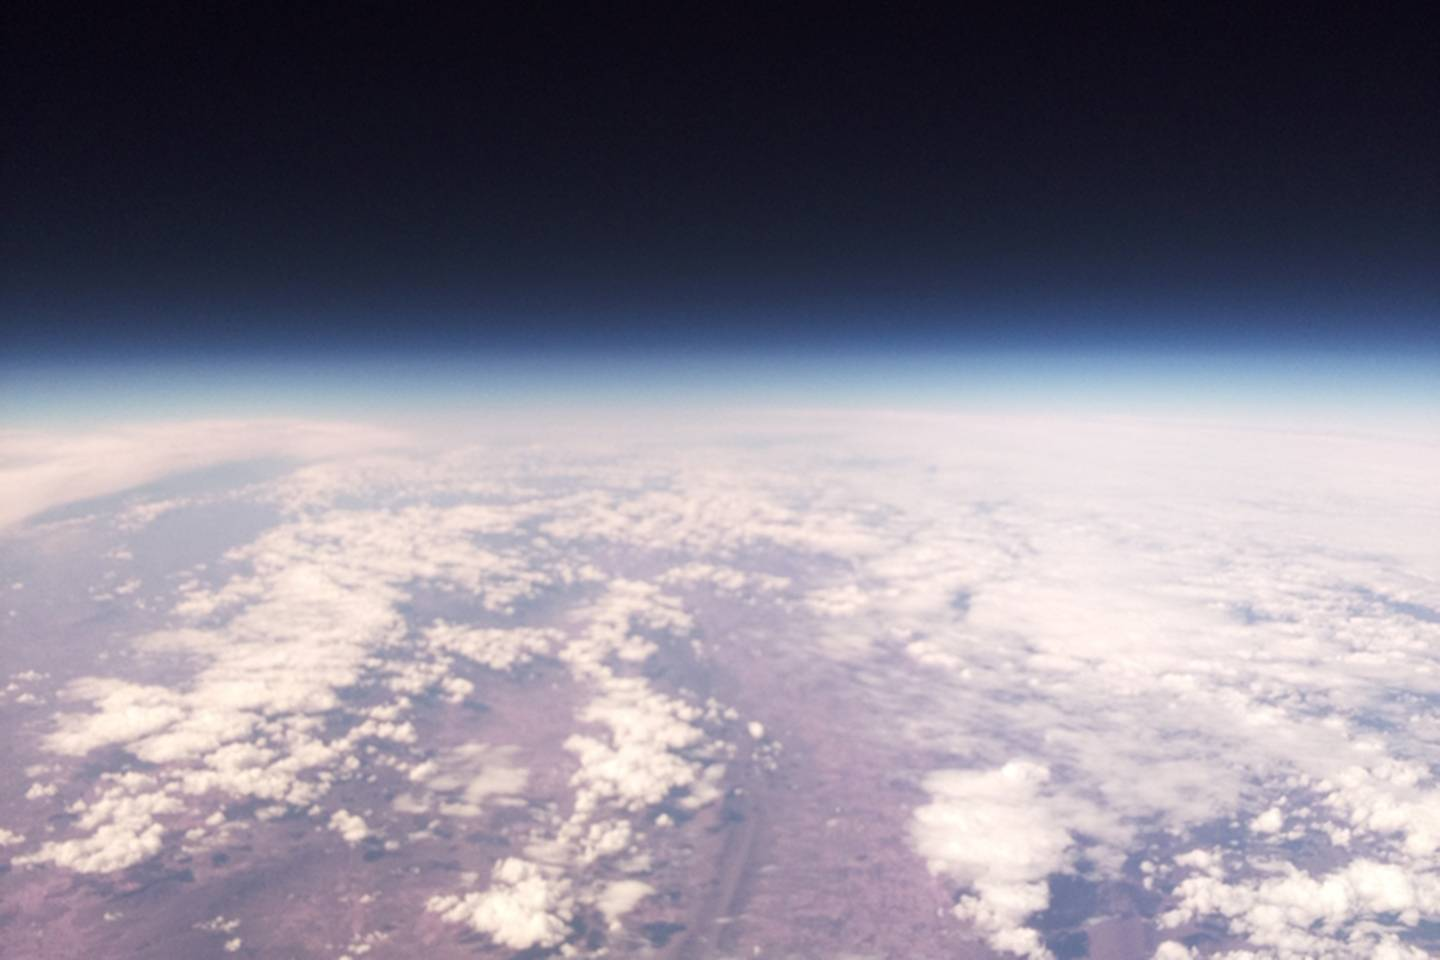 Photo taken of the Earth from the atmosphere at the balloon's peak height